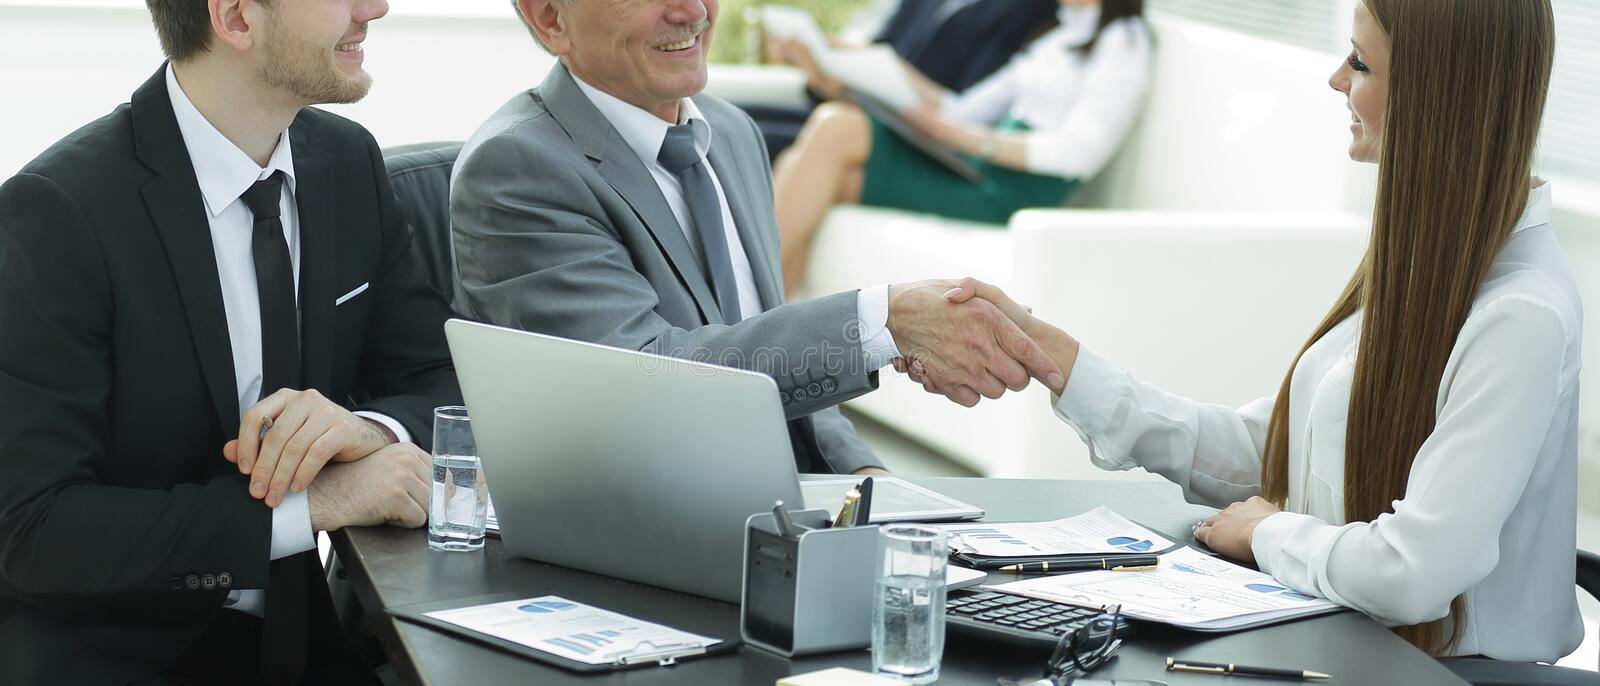 Business woman shaking hands with an adult business partner. royalty free stock image